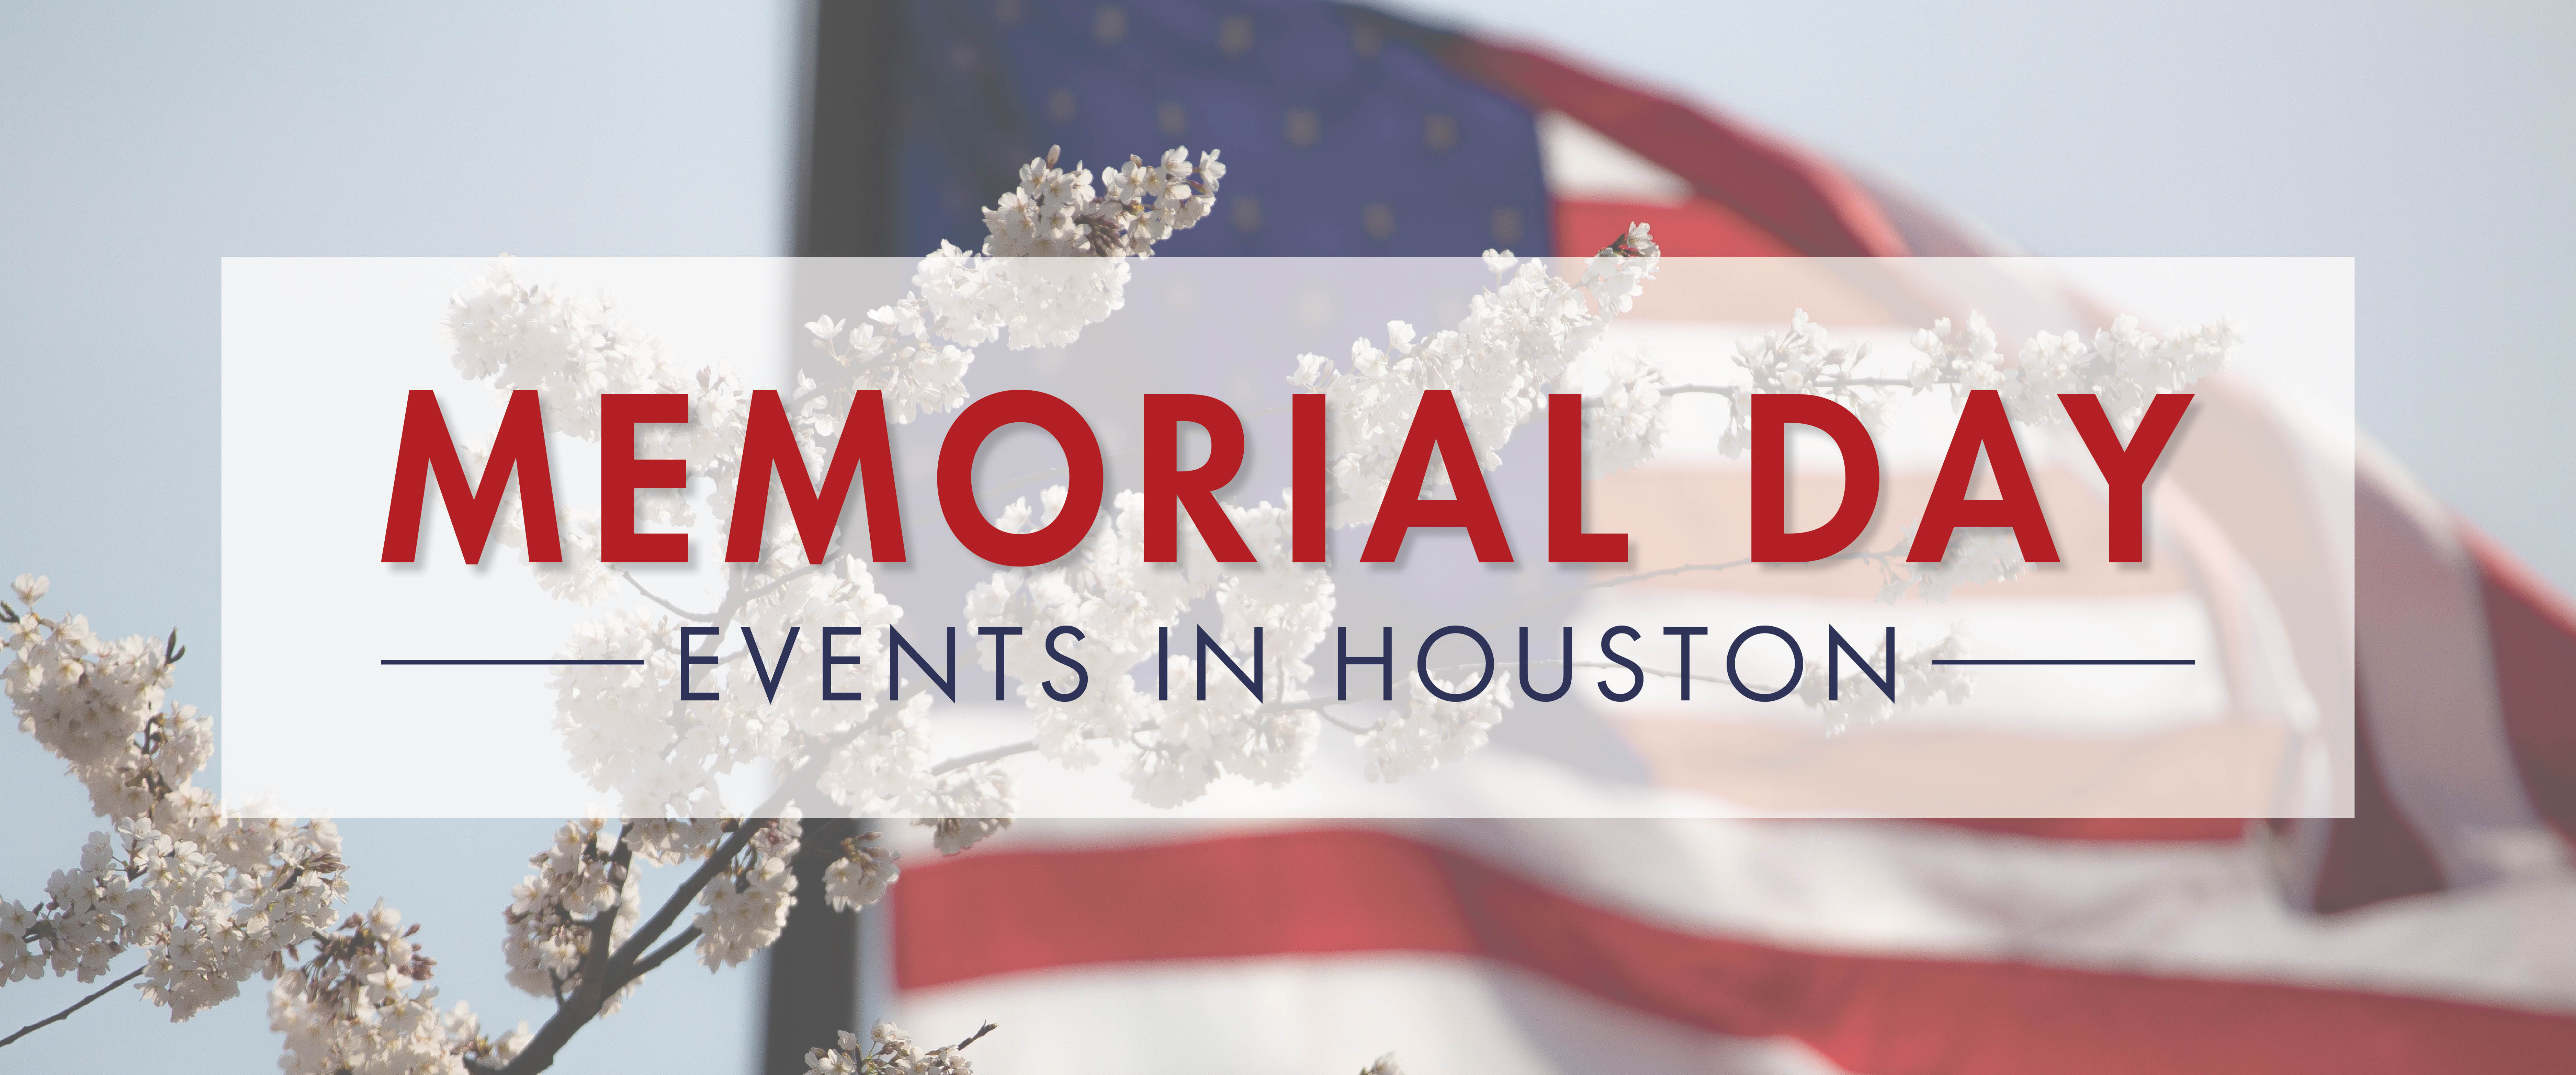 Memorial Day Weekend Events in Houston